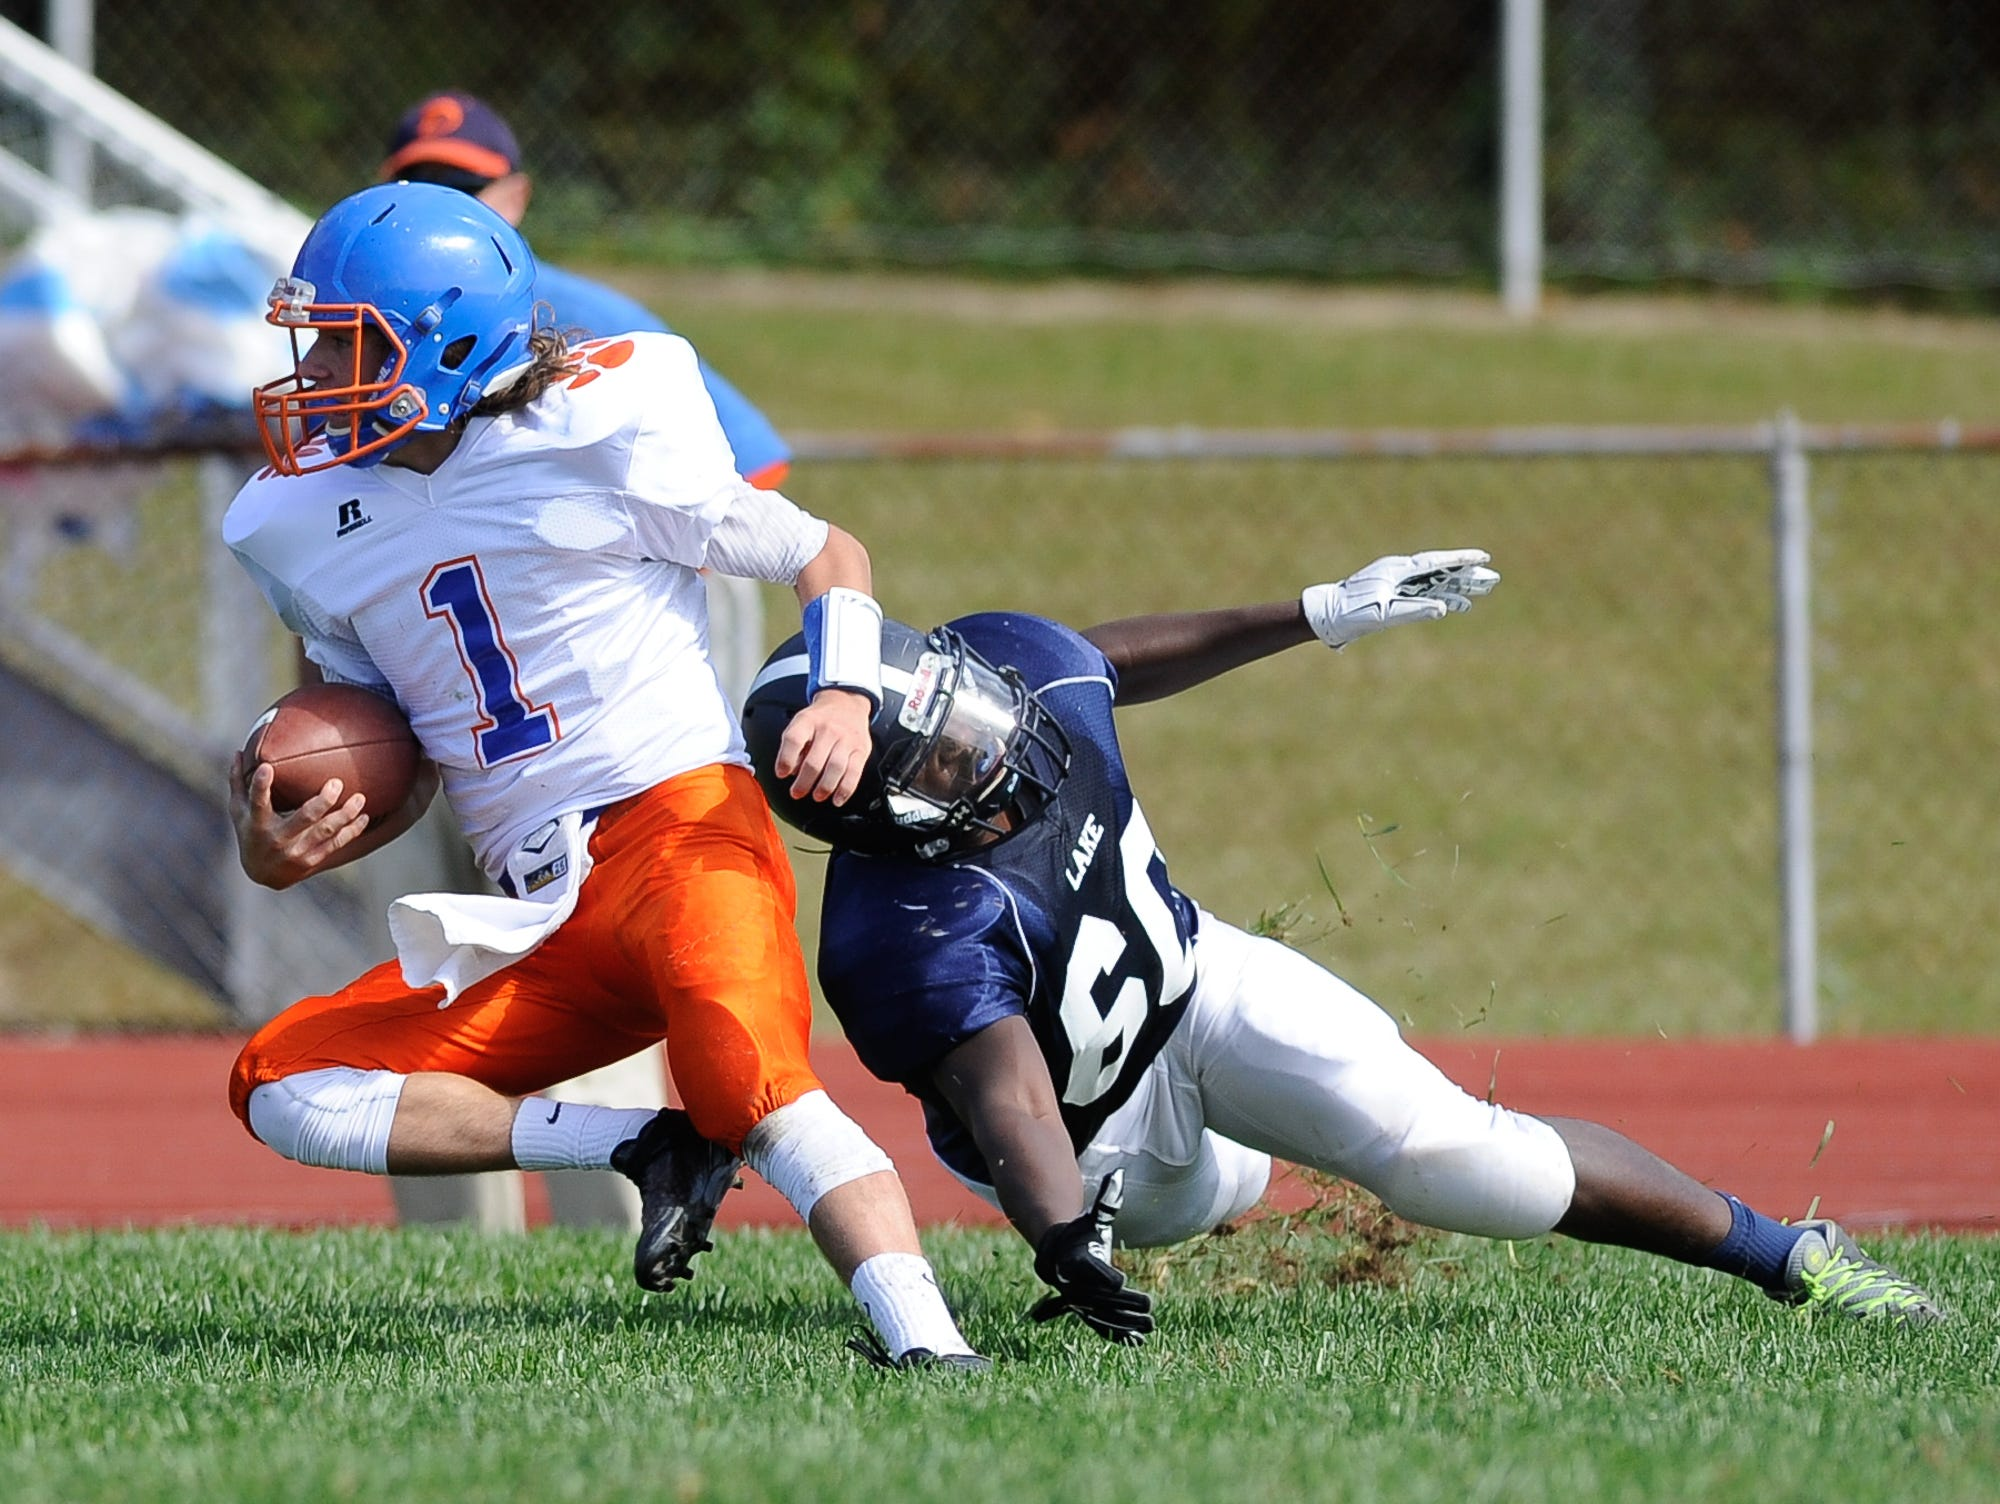 Lake Forest's #60 Dawaunta Parker misses a tackle on Delmar's quarterback #1 James Adkins in their 19-14 win over Delmar on Saturday at Lake Forest High School.